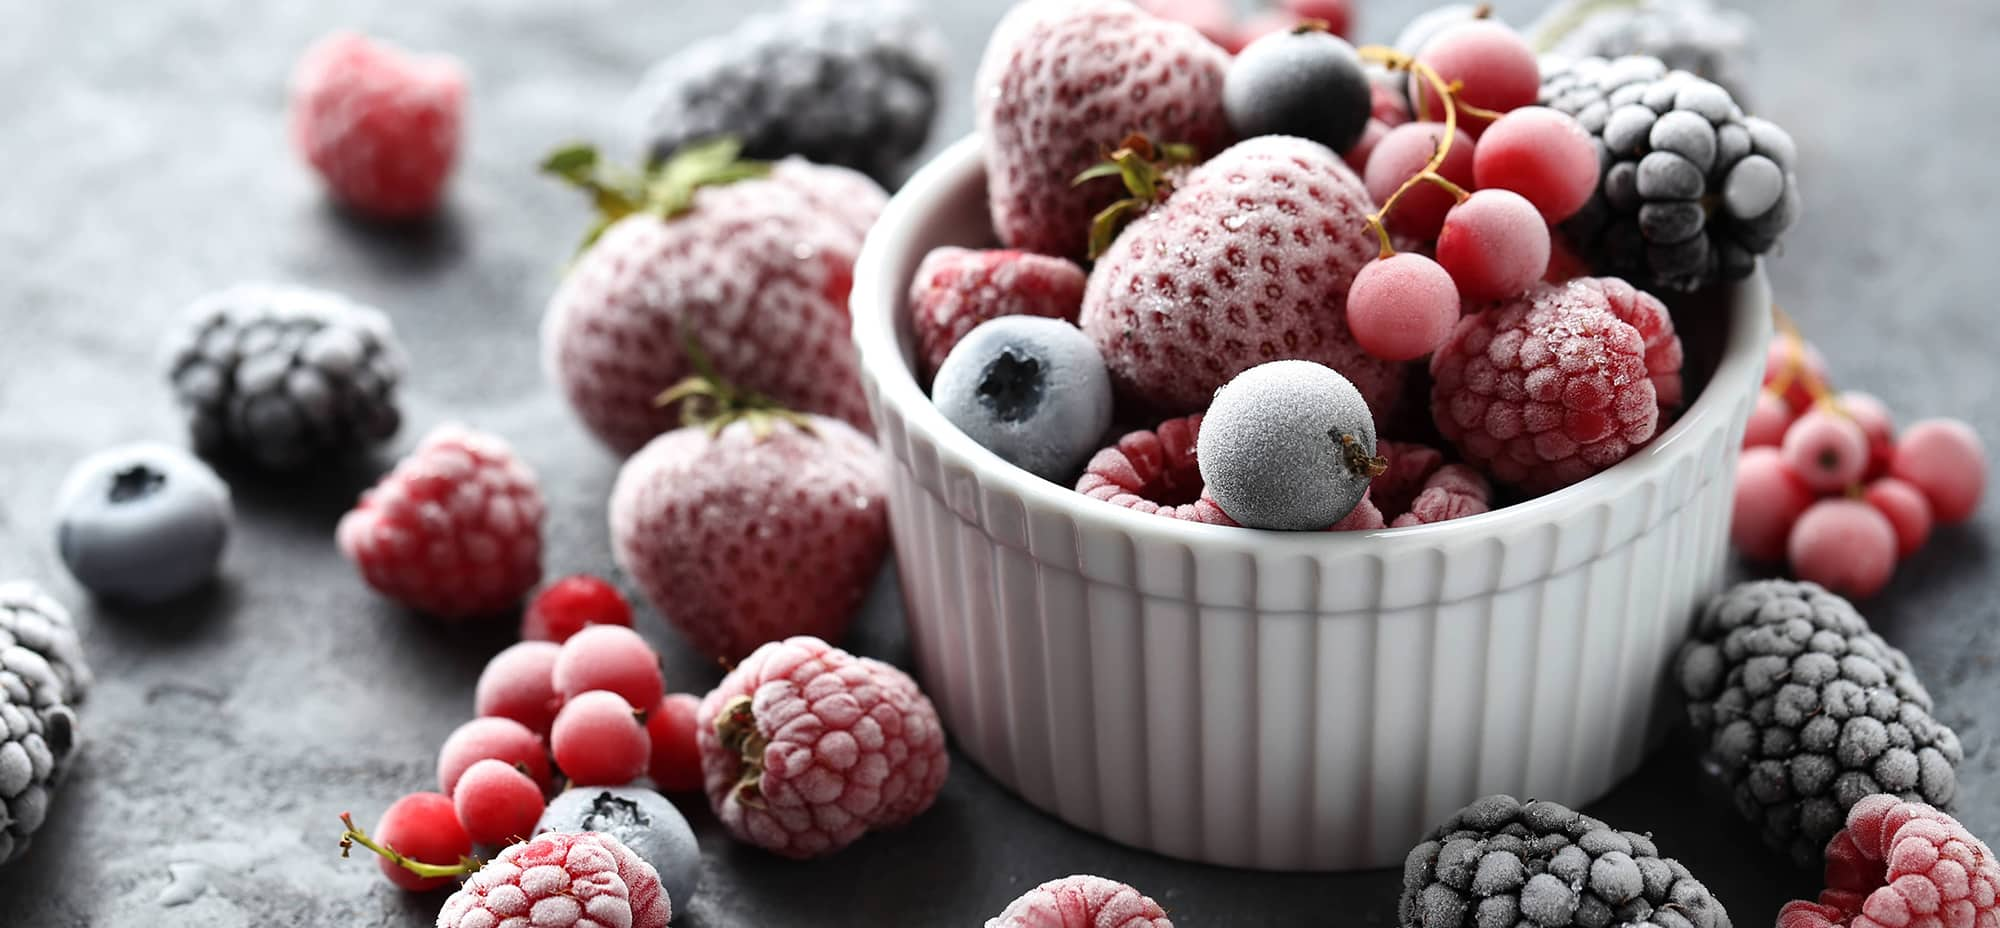 Image of frozen berries in a bowl